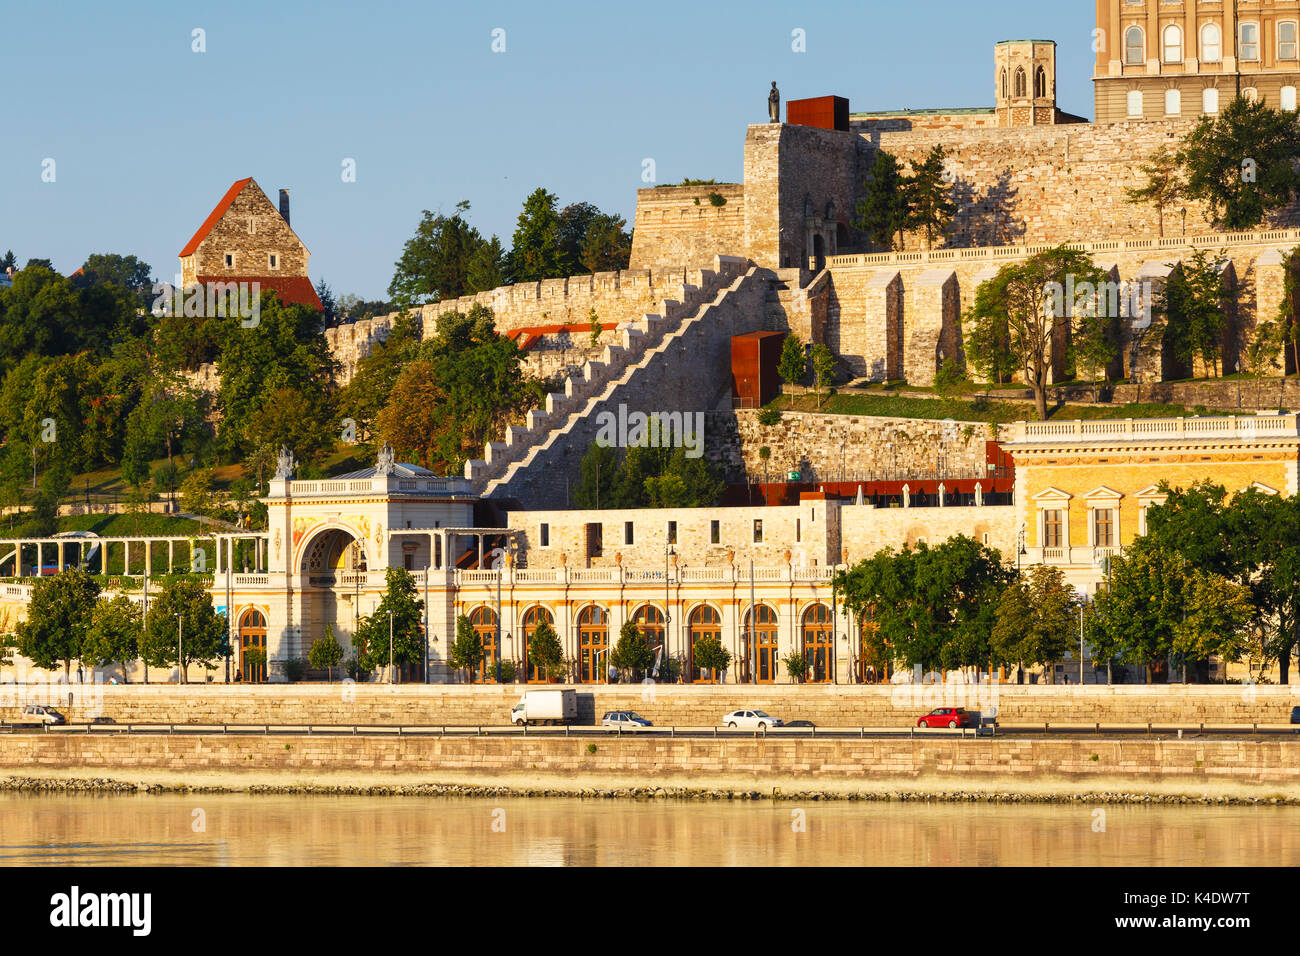 Morning view of Buda castle fortifications and gardens over the river Danube, Hungary. - Stock Image